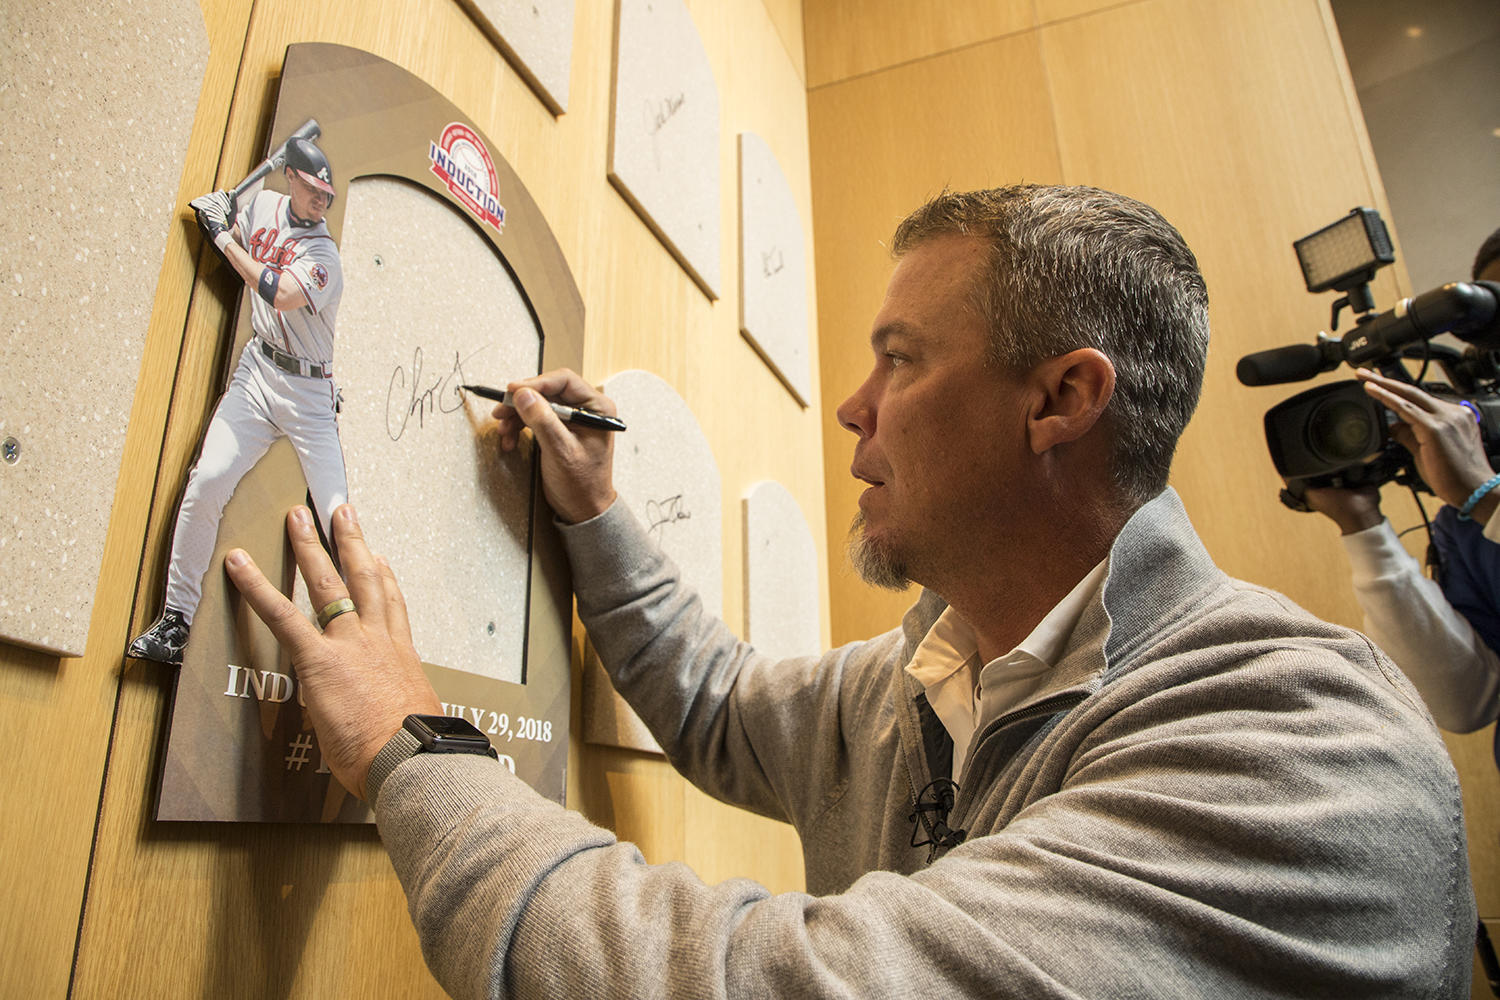 Chipper Jones signs the backer where his bronze plaque will be placed following his Hall of Fame induction on July 29. (Milo Stewart Jr./National Baseball Hall of Fame and Museum)